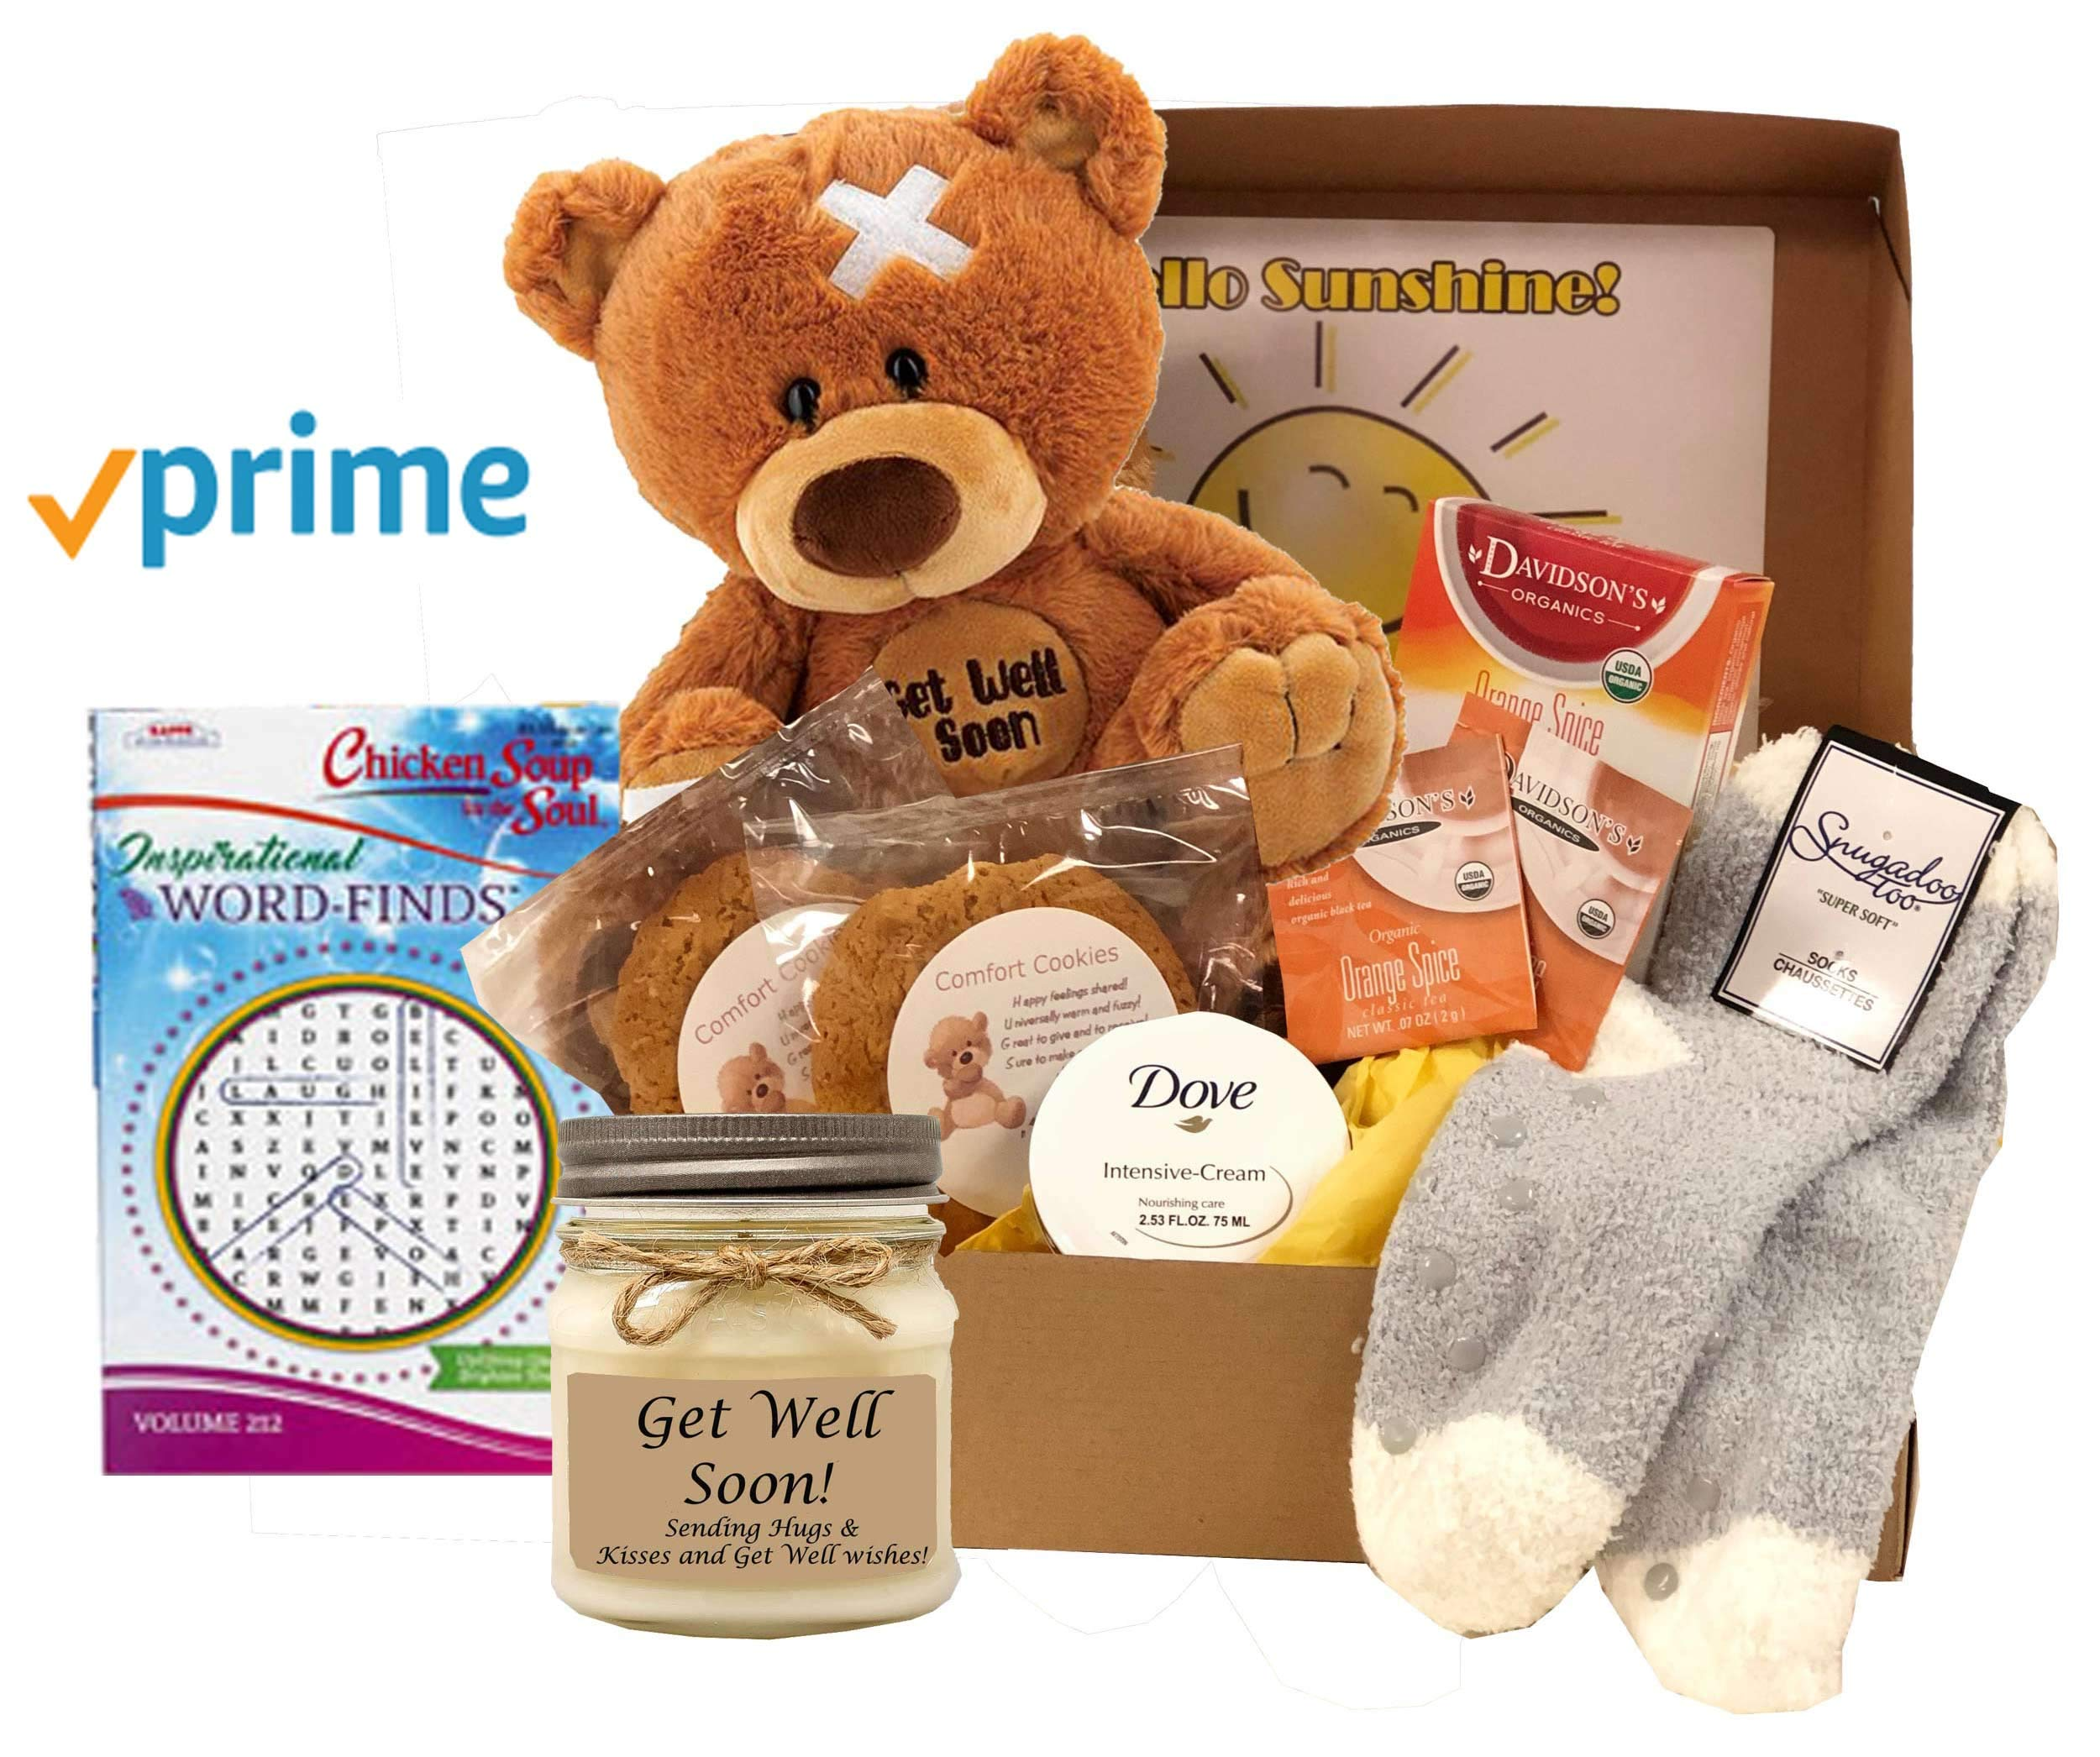 Get Well Gift of Sunshine - Get Well Gift For Women - Prime by GiftBasketsAssociates